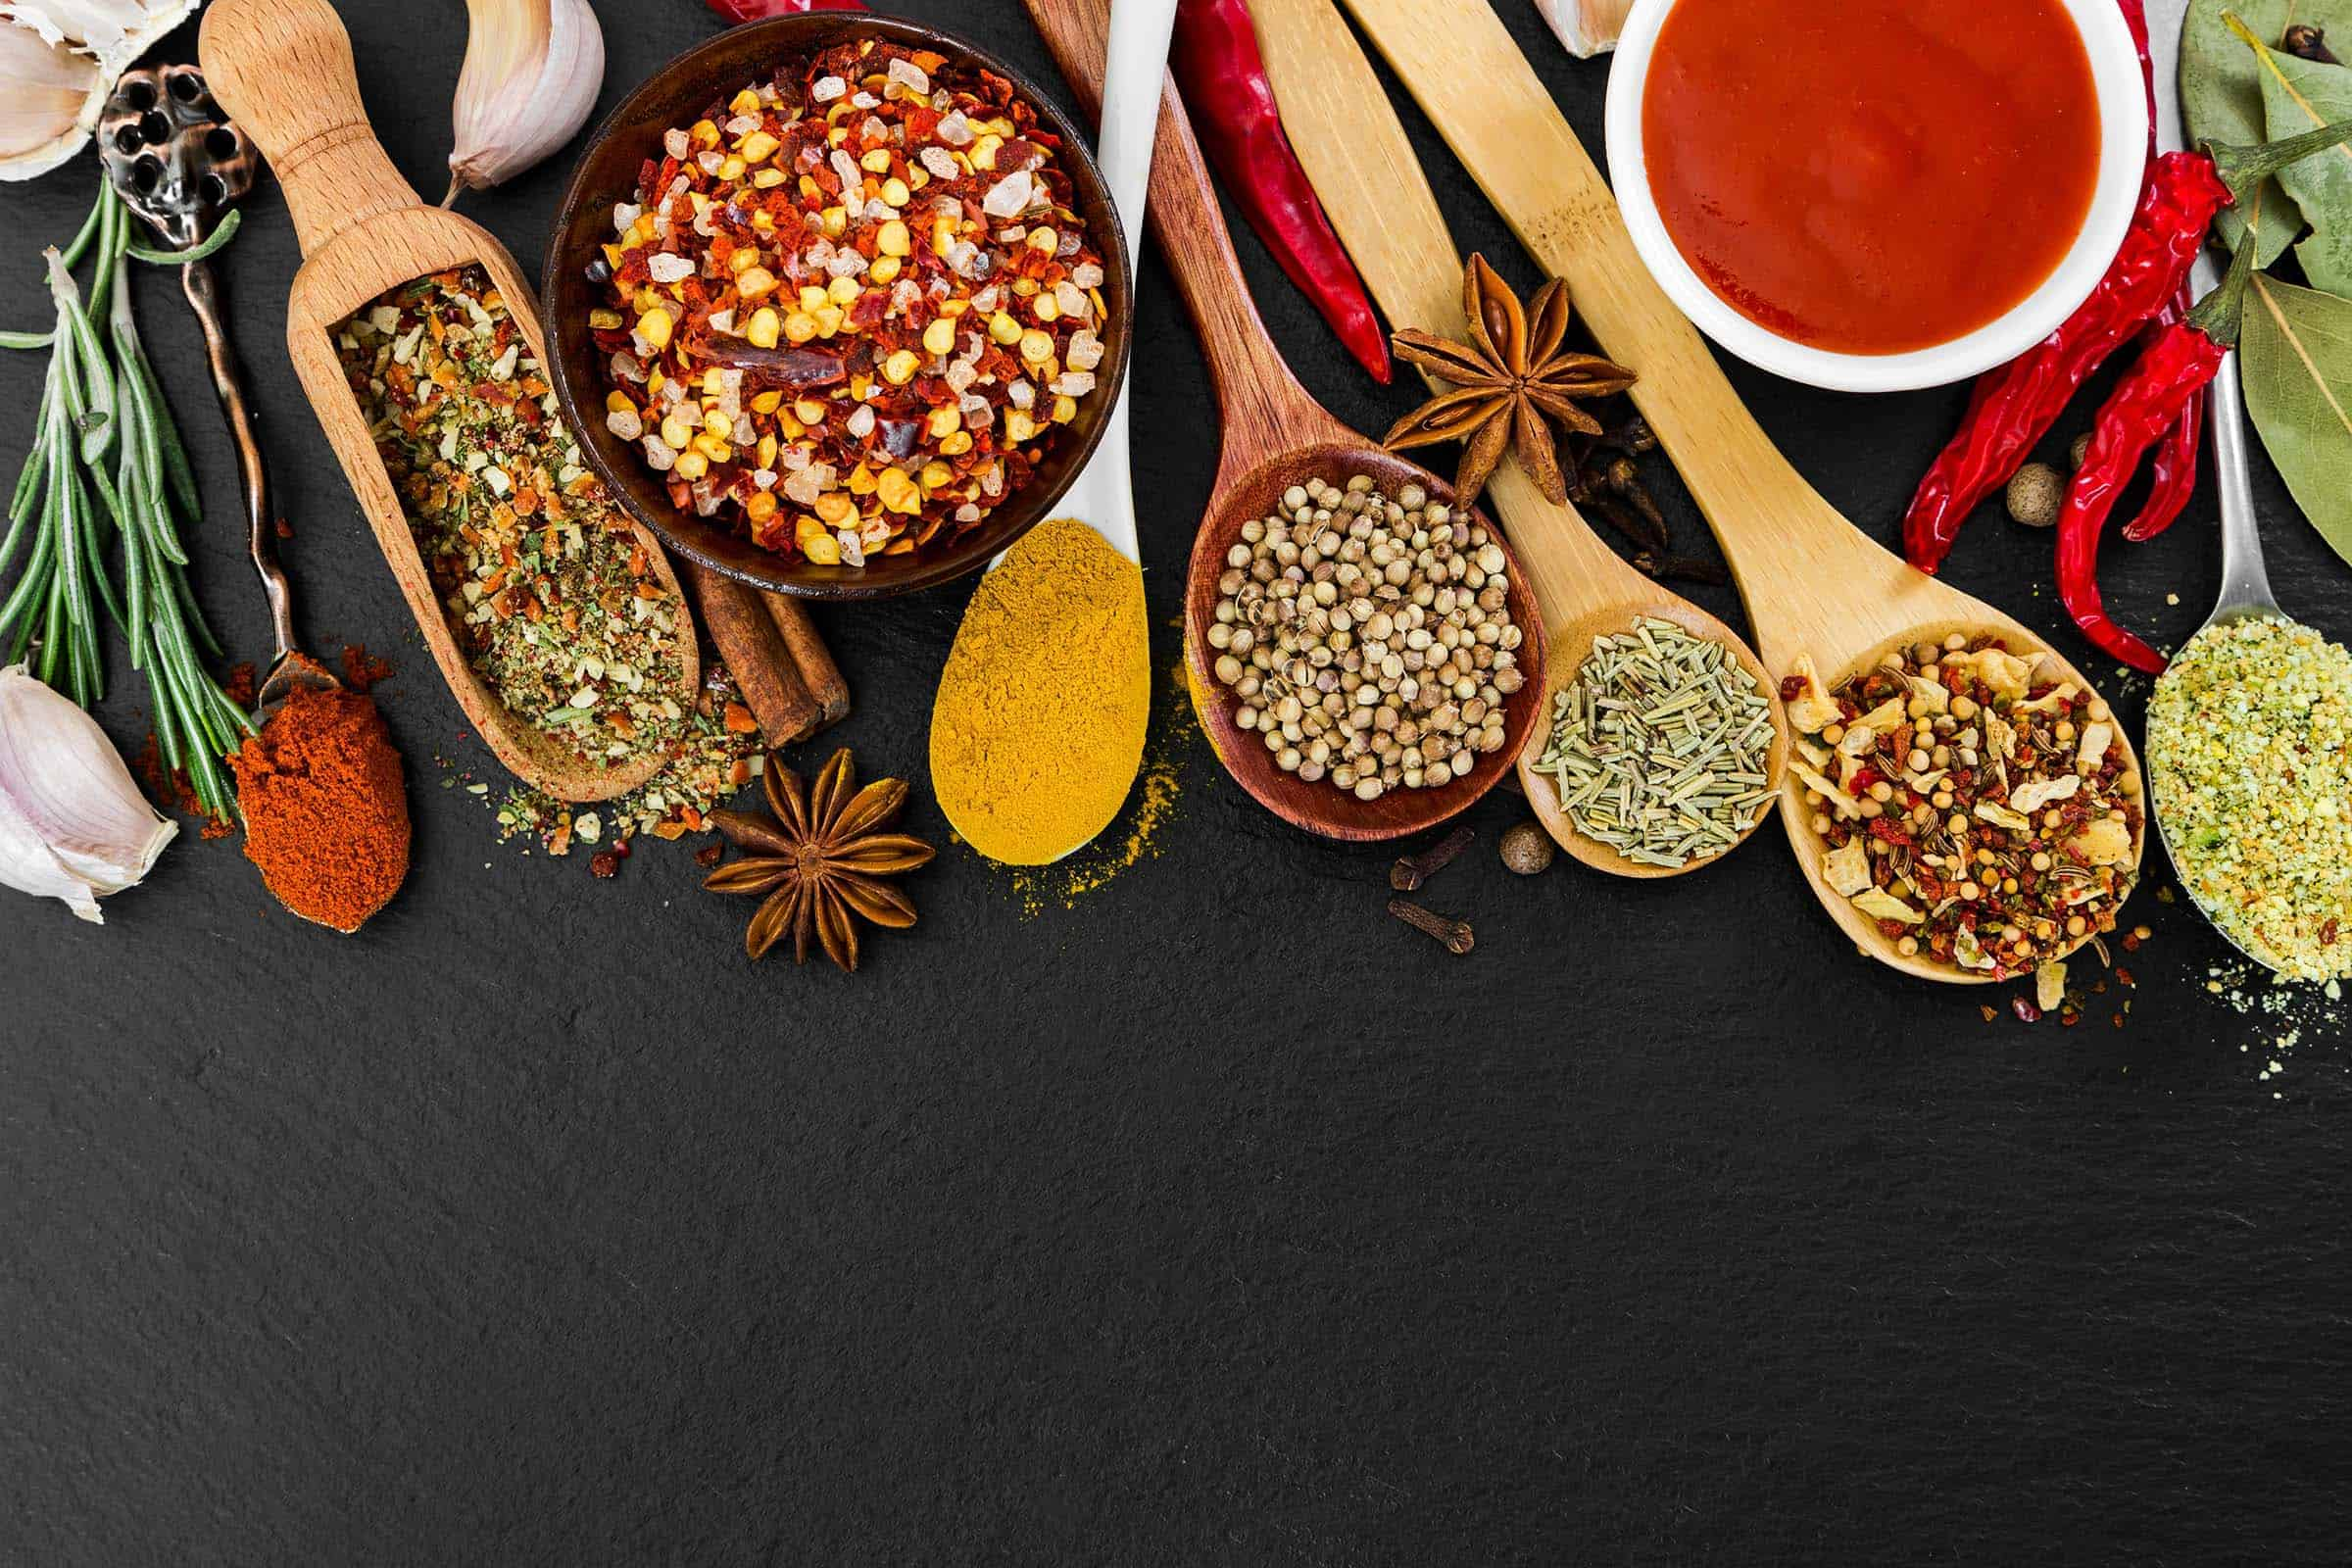 Fragrant seasonings and spices on black background. Top view.